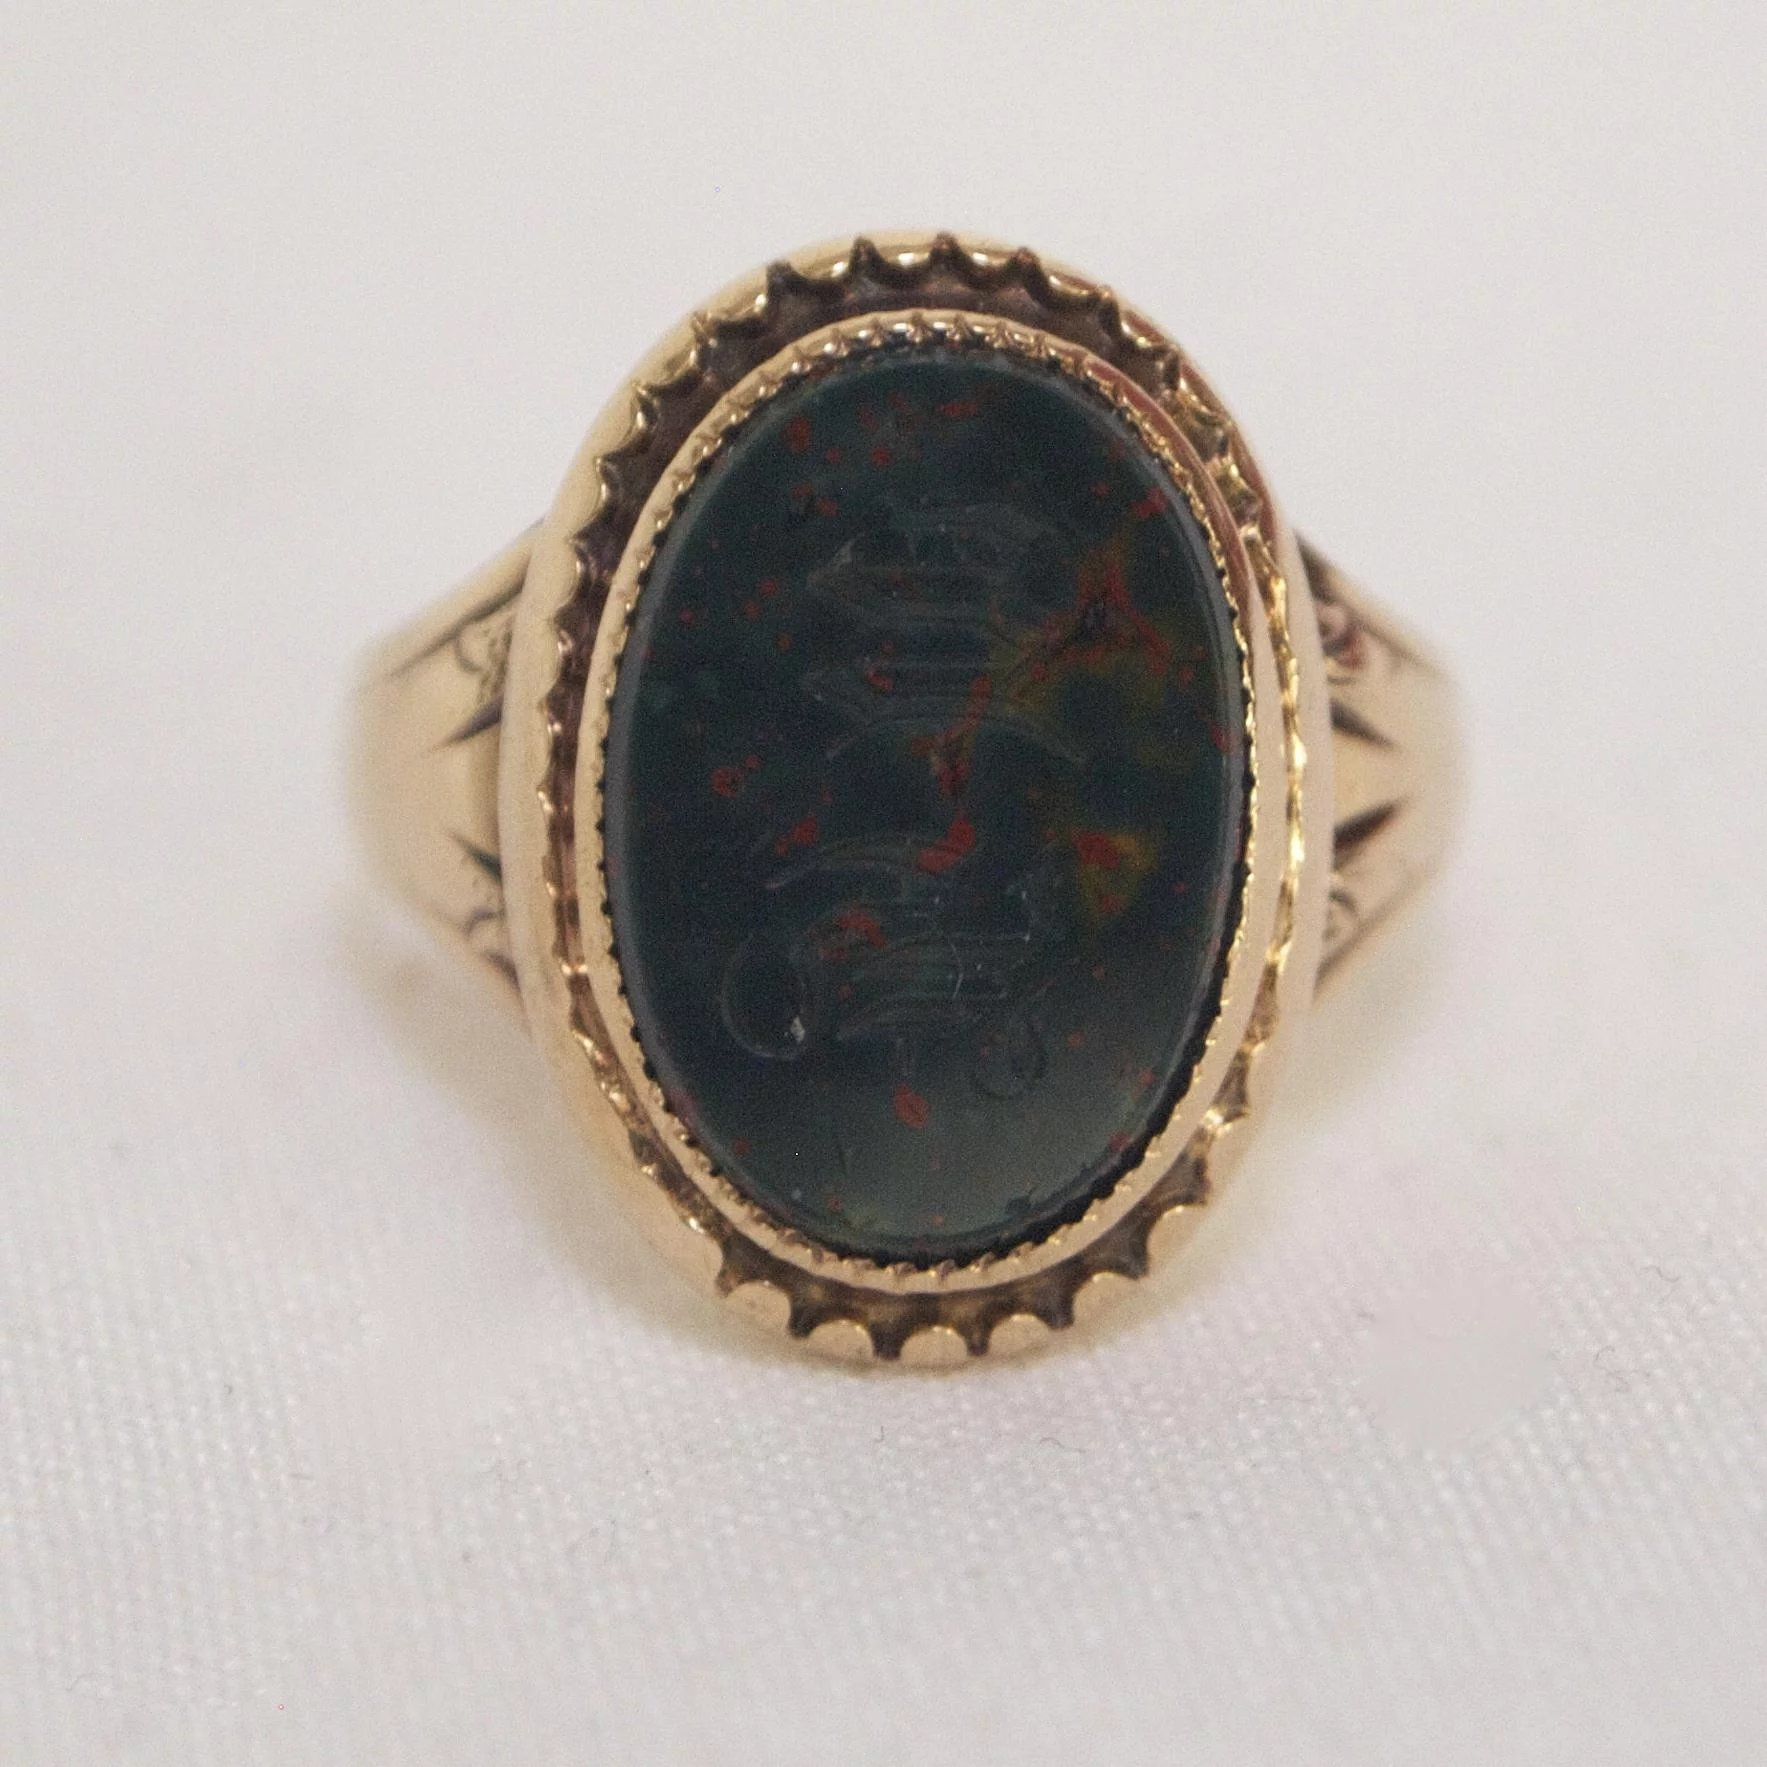 What The Purpose Of A Signet Ring